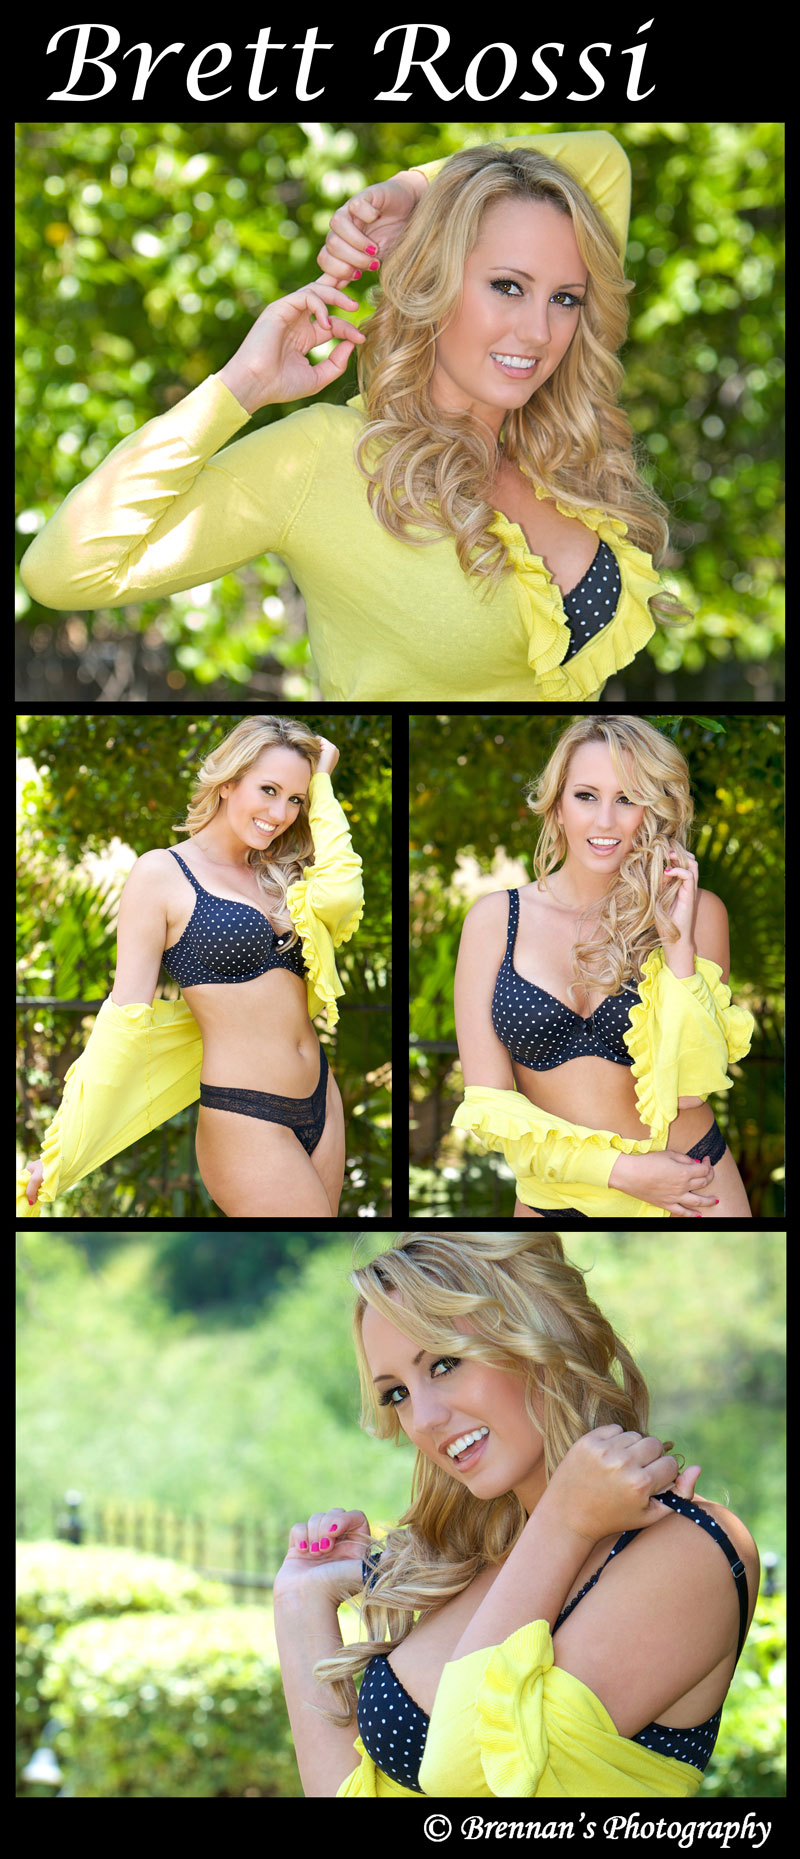 Riverside May 30, 2011 Brennans Photography Bretts Yellow N Black Series (Penthouse Pet of the Month - Feb. 2012)